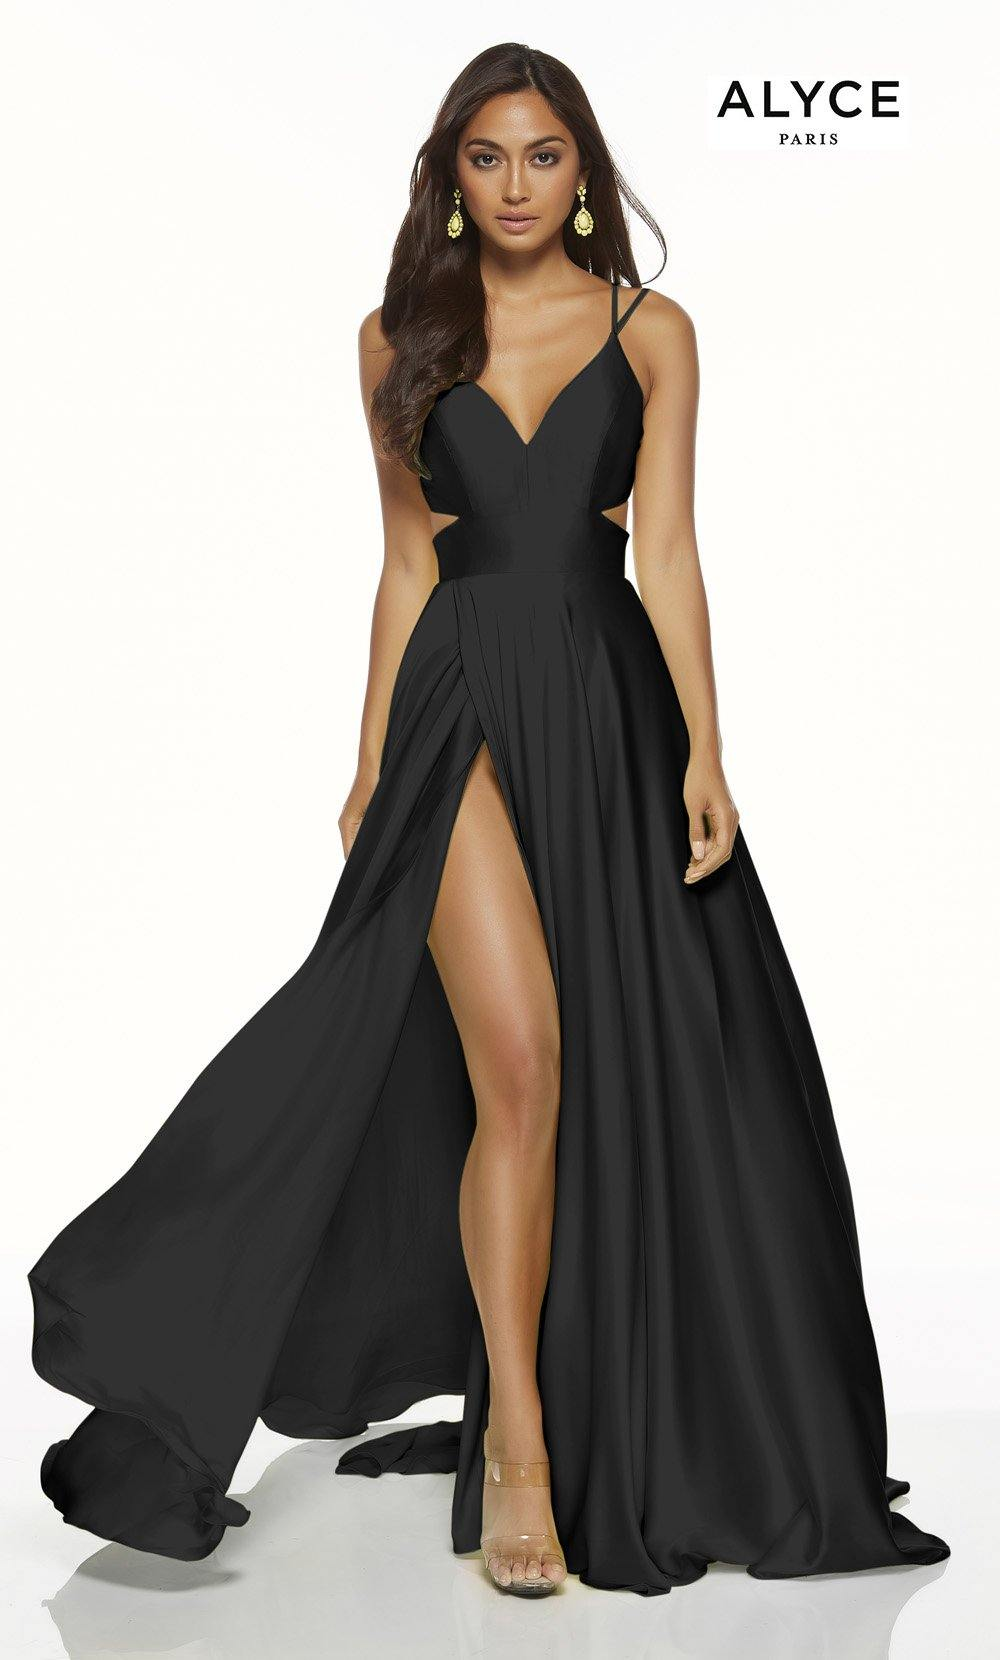 Black flowy satin chiffon formal dress with a V neck, side cutouts, and front slit